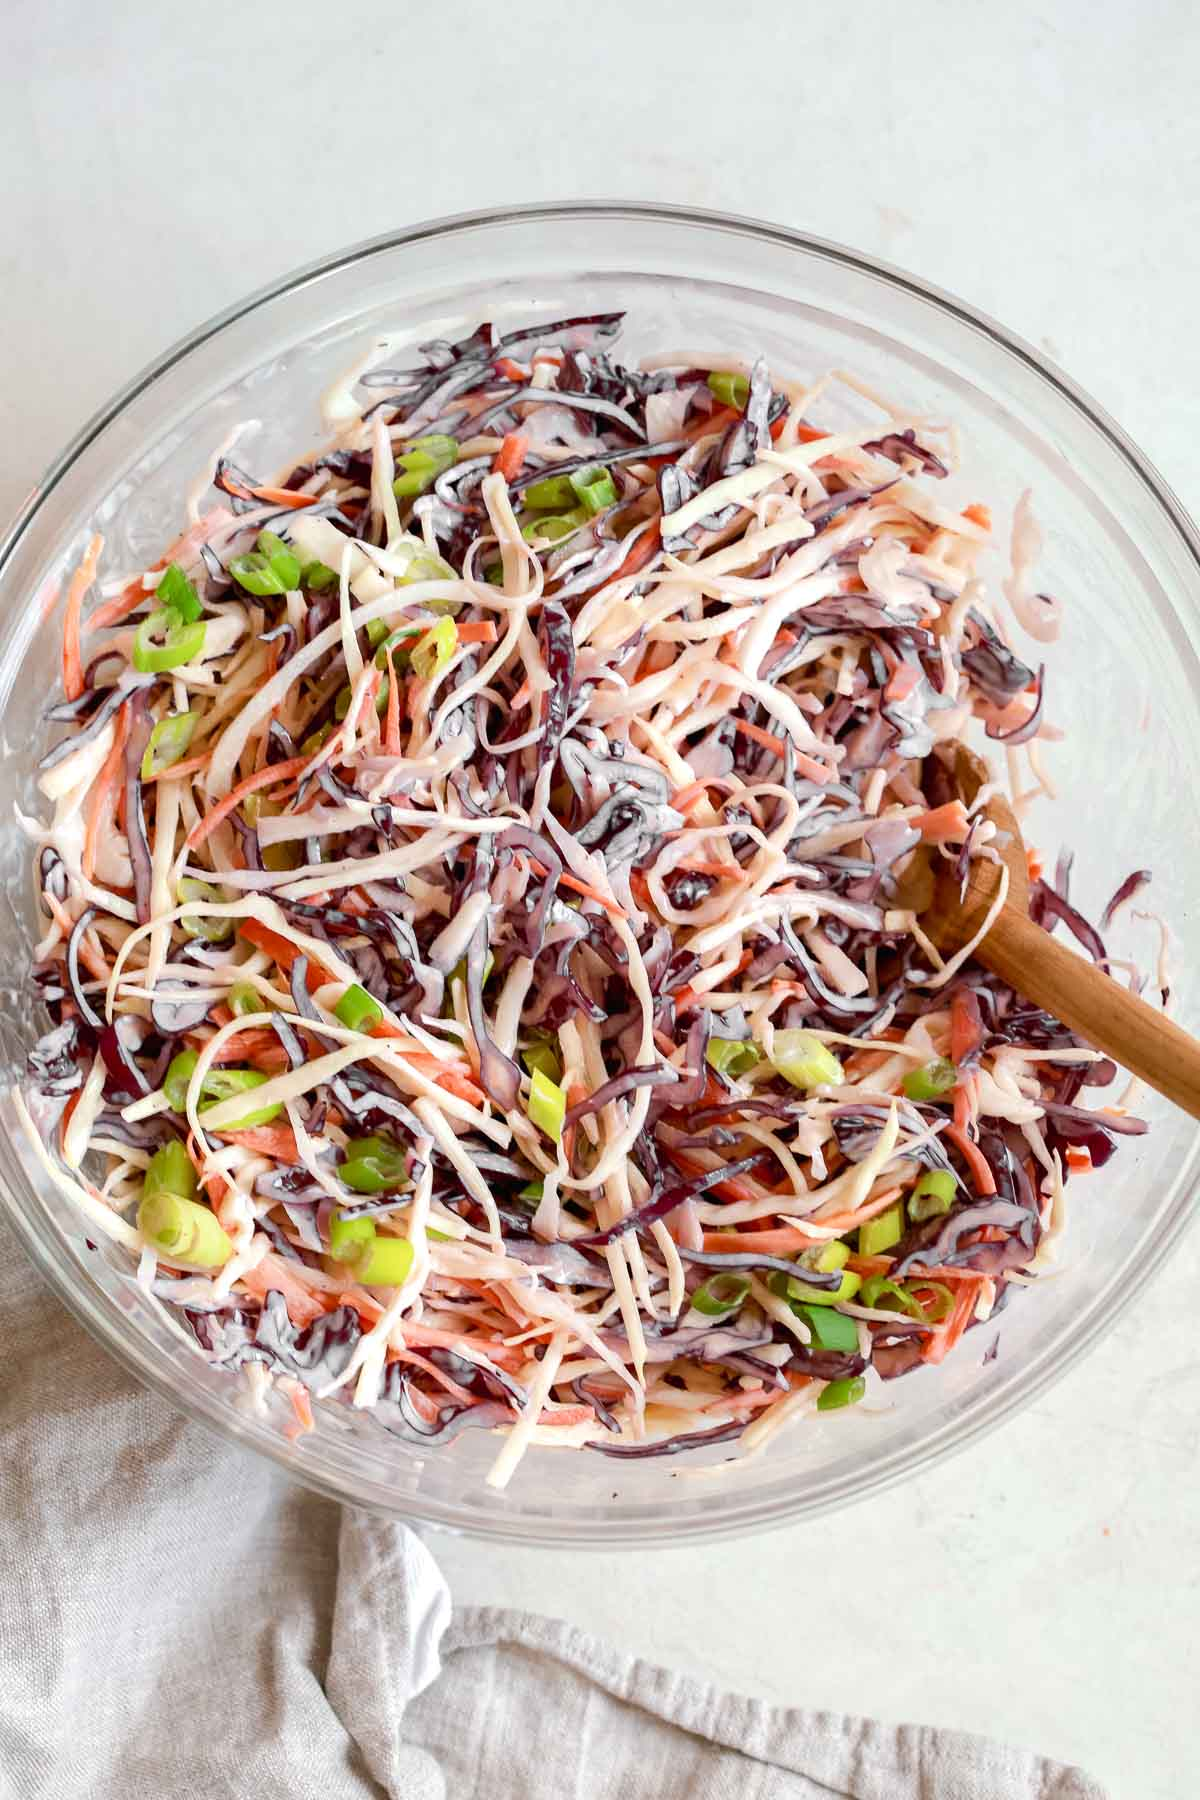 Overhead photo of cabbage coleslaw